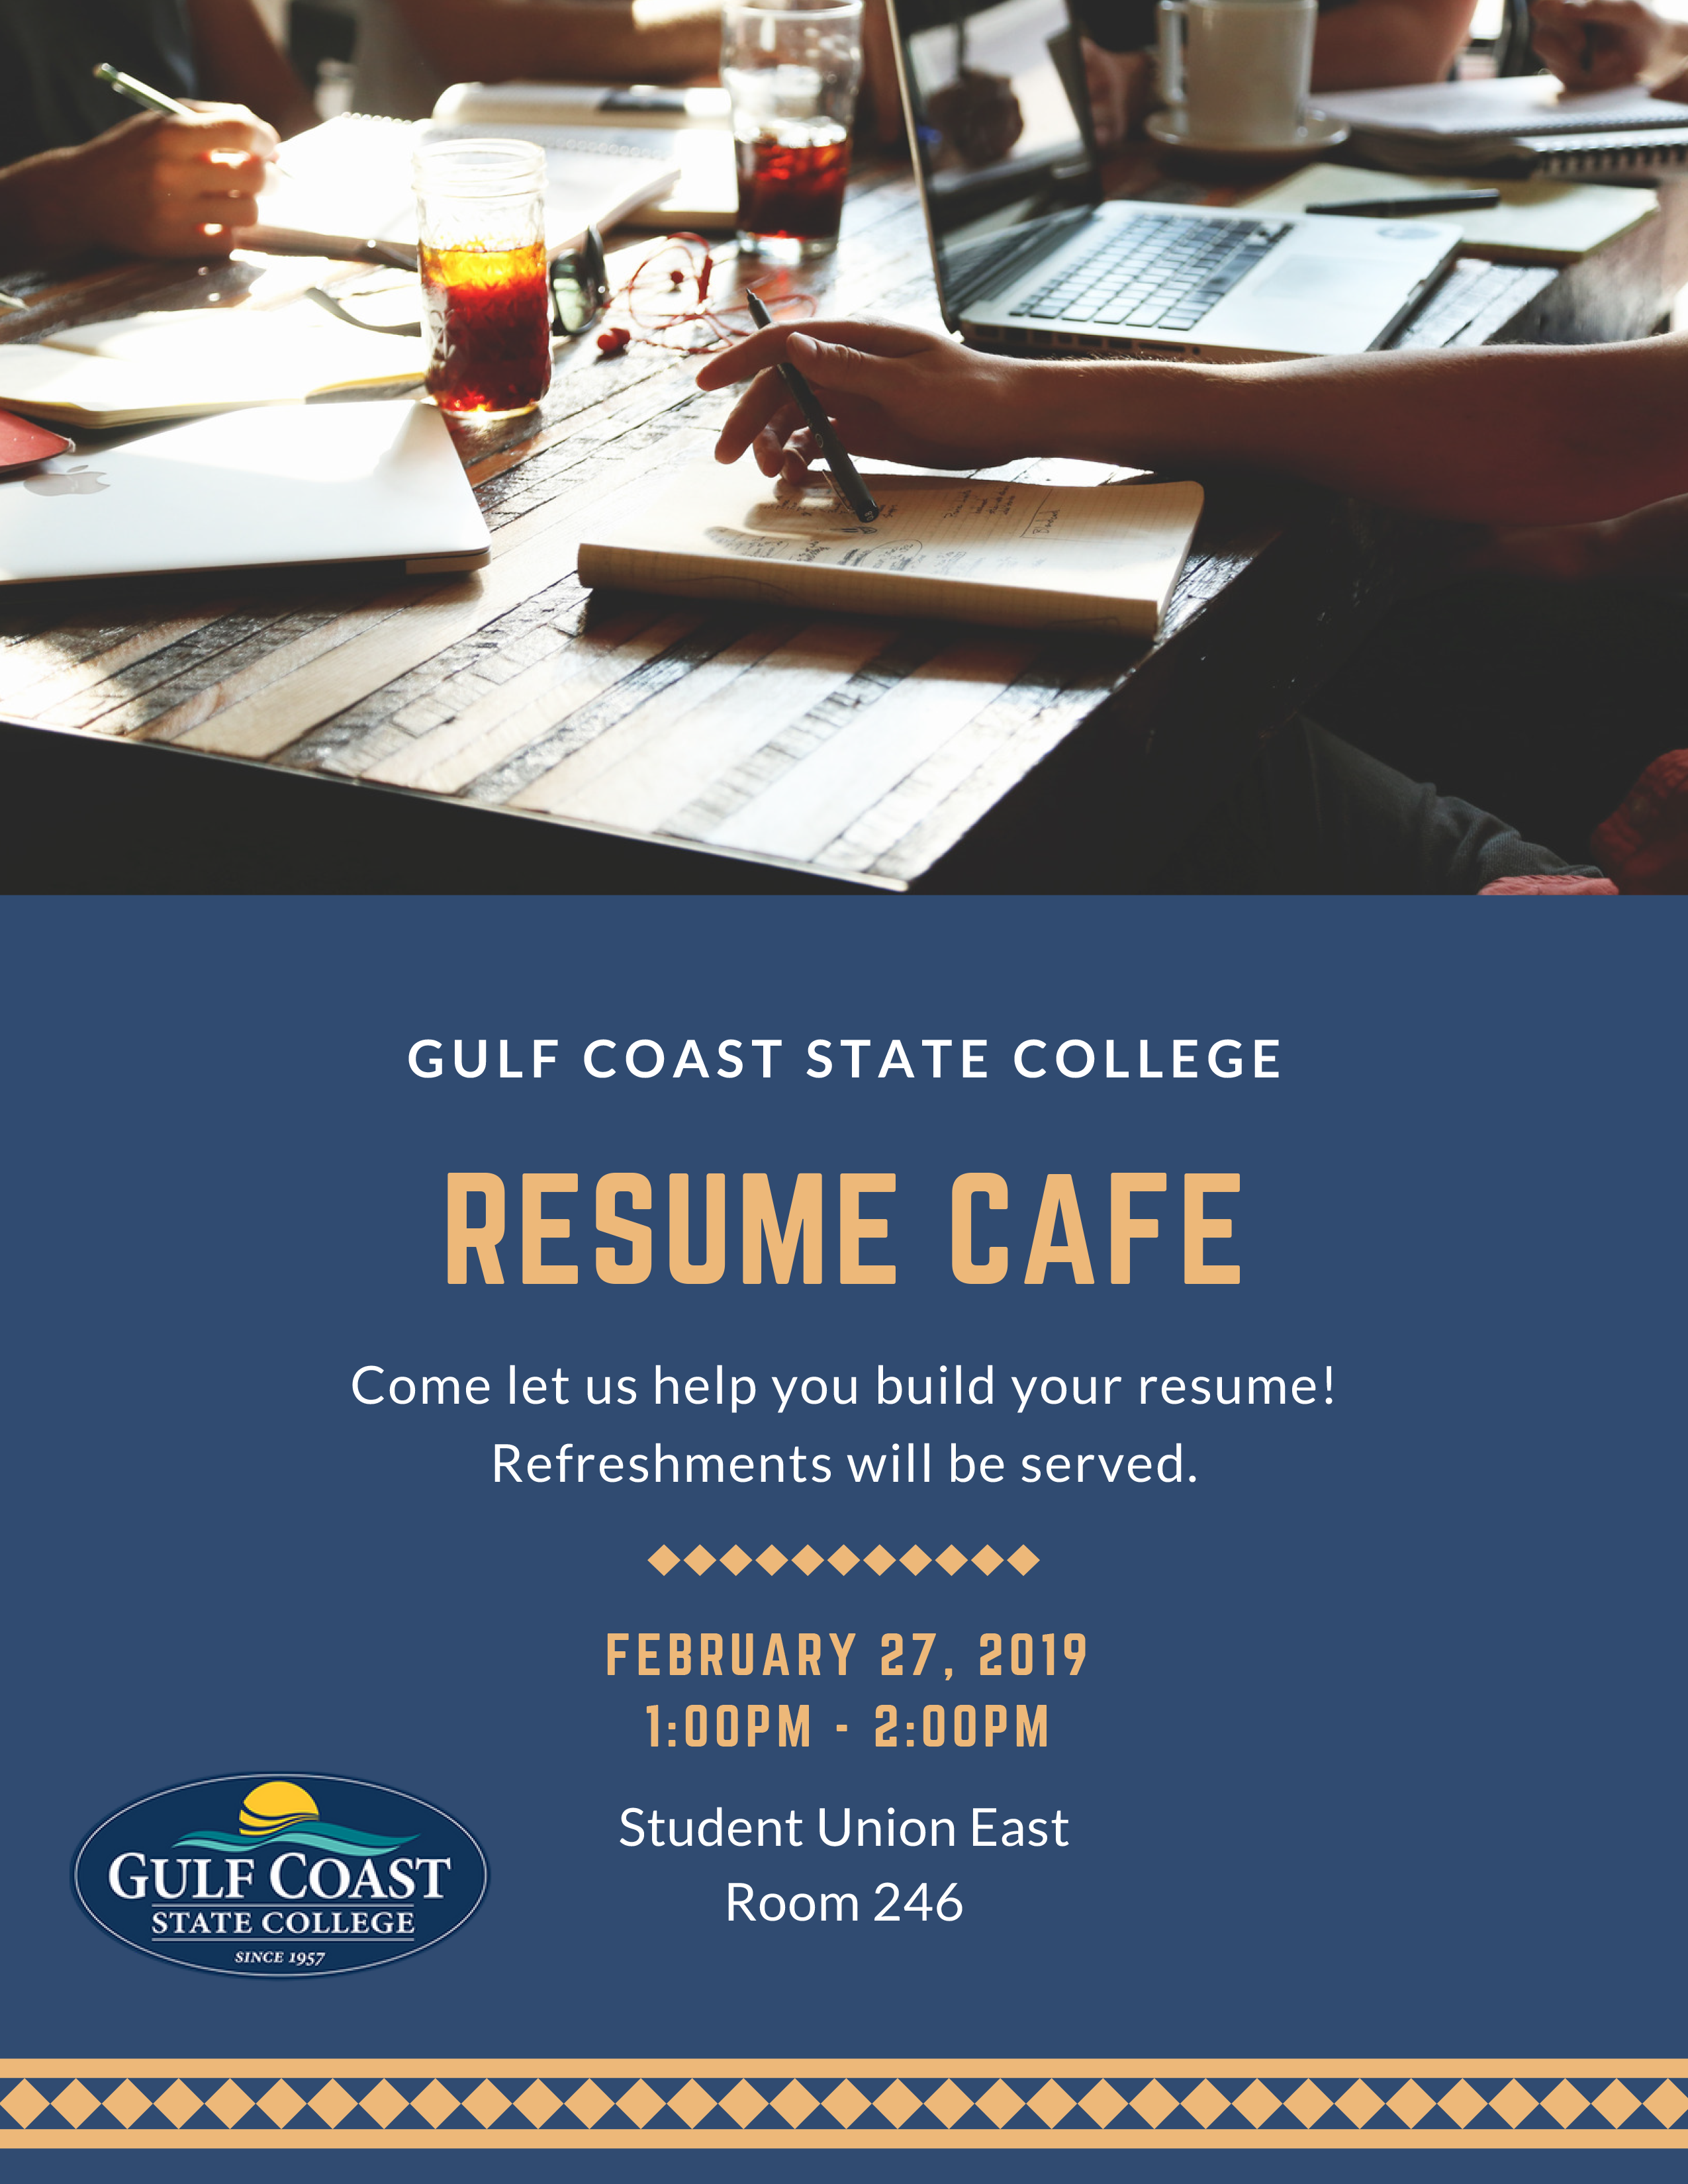 Come to Resume Cafe and let us help you build your resume!